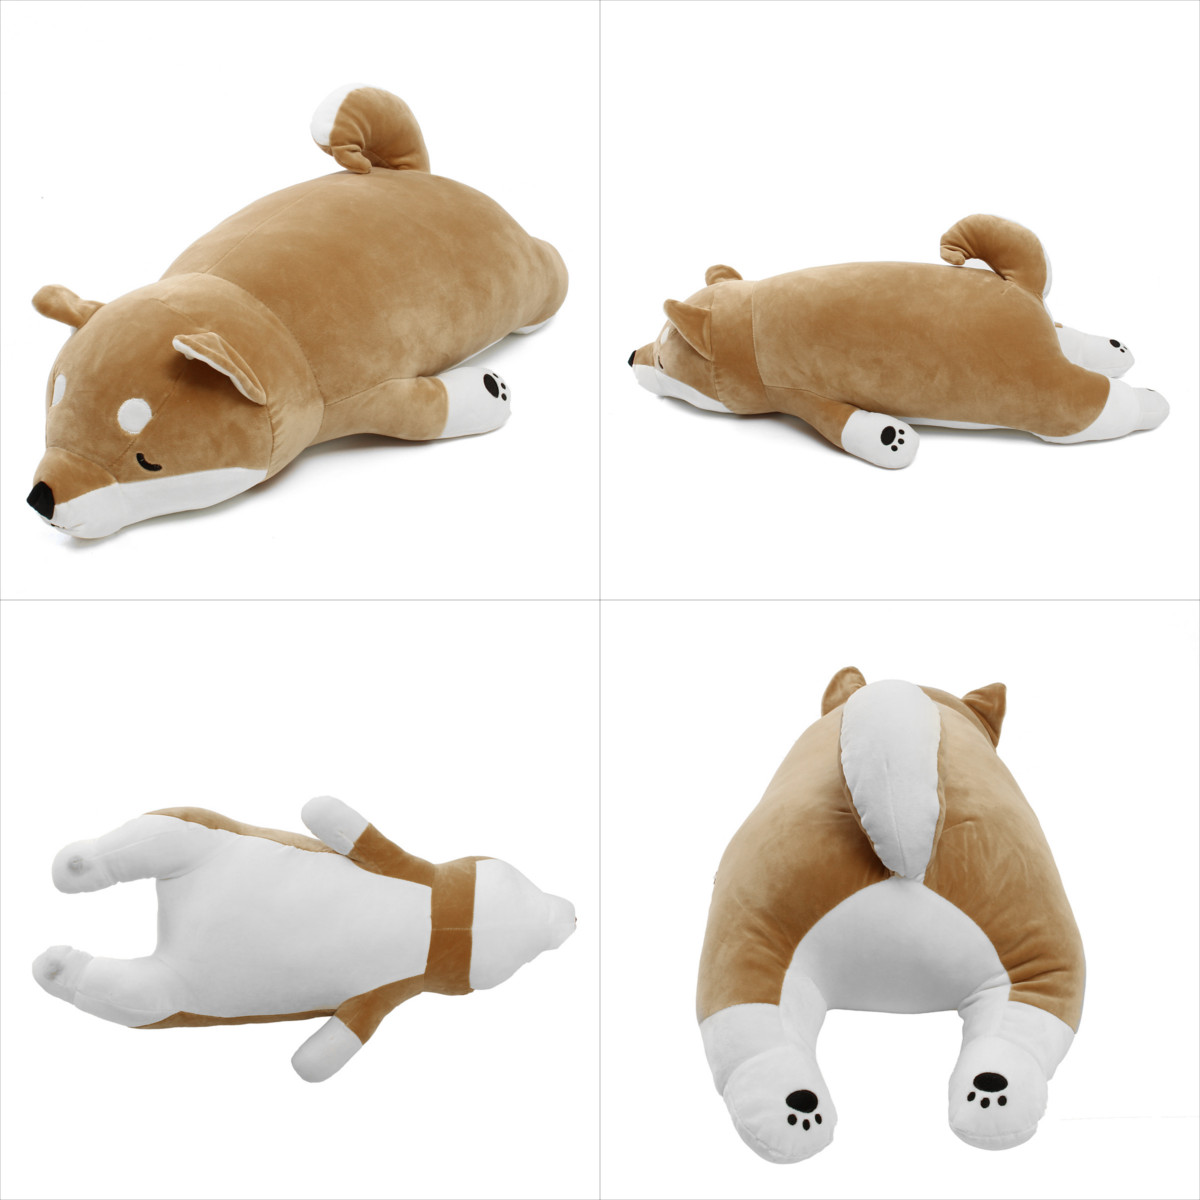 Japanese Anime Shiba Inu Dog Stuffed Plush Toy Doll Soft Stuffed Animal Toy Cute Puppy